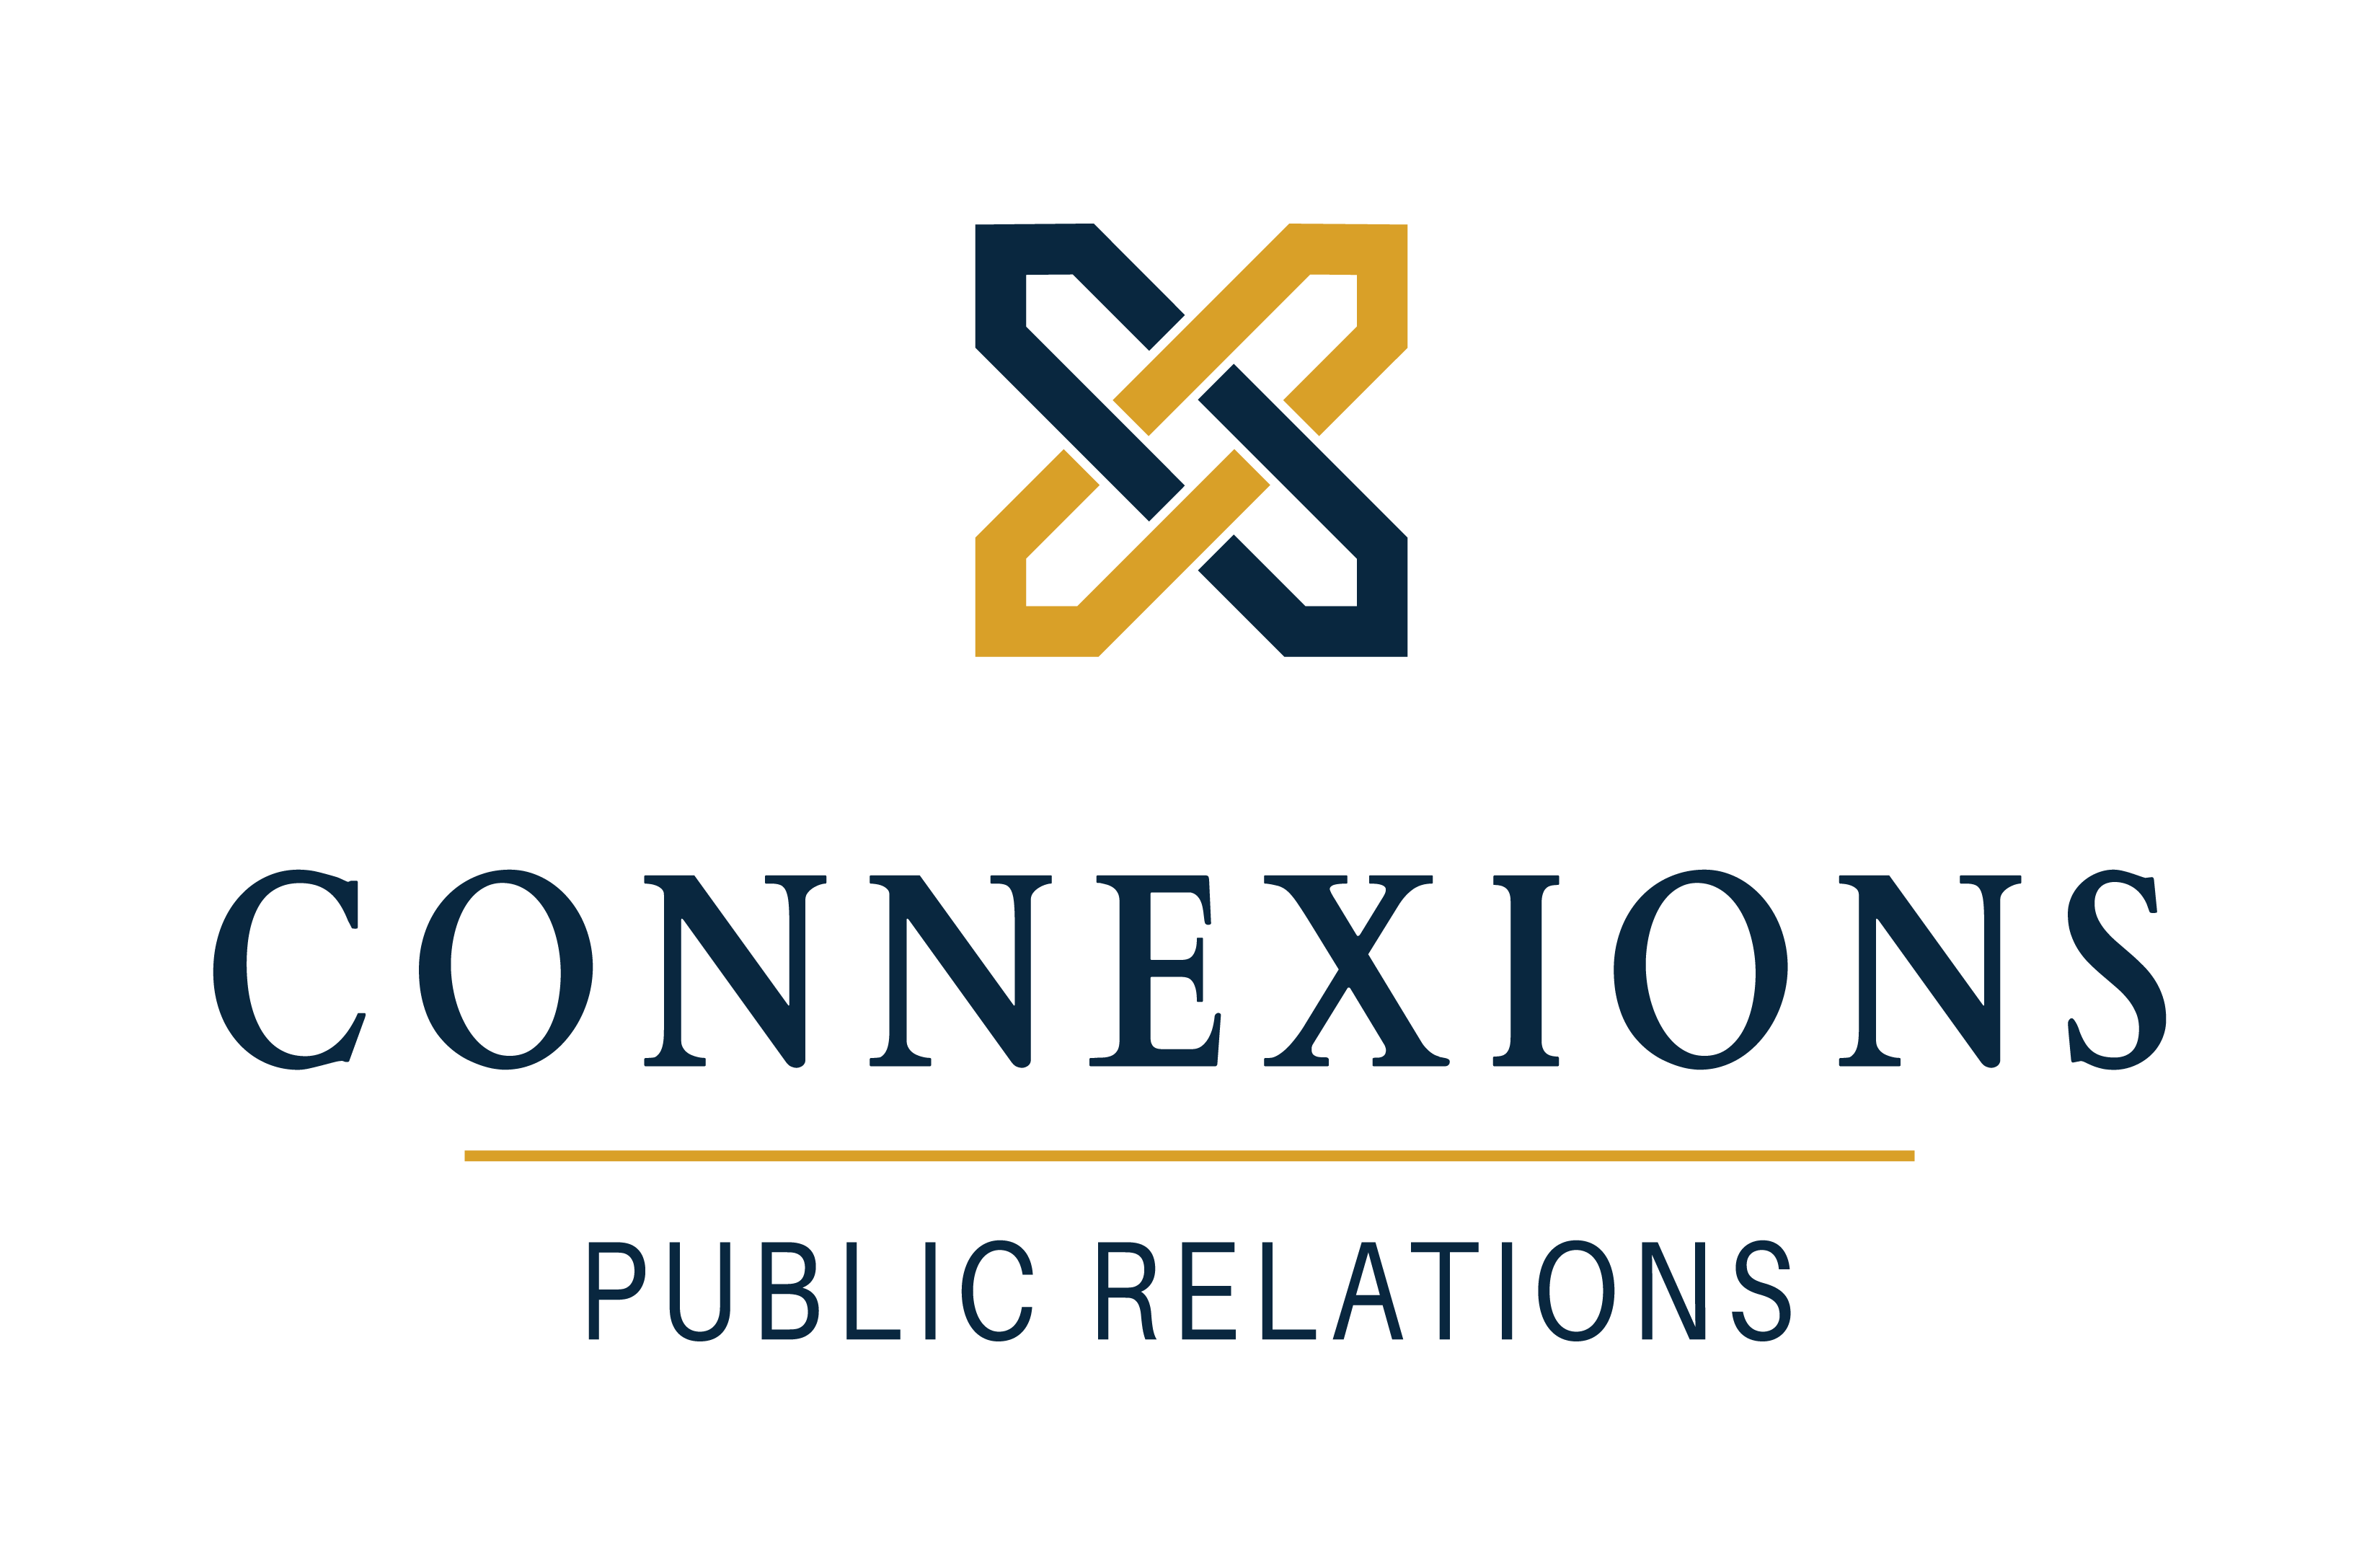 Connexions Public Relations